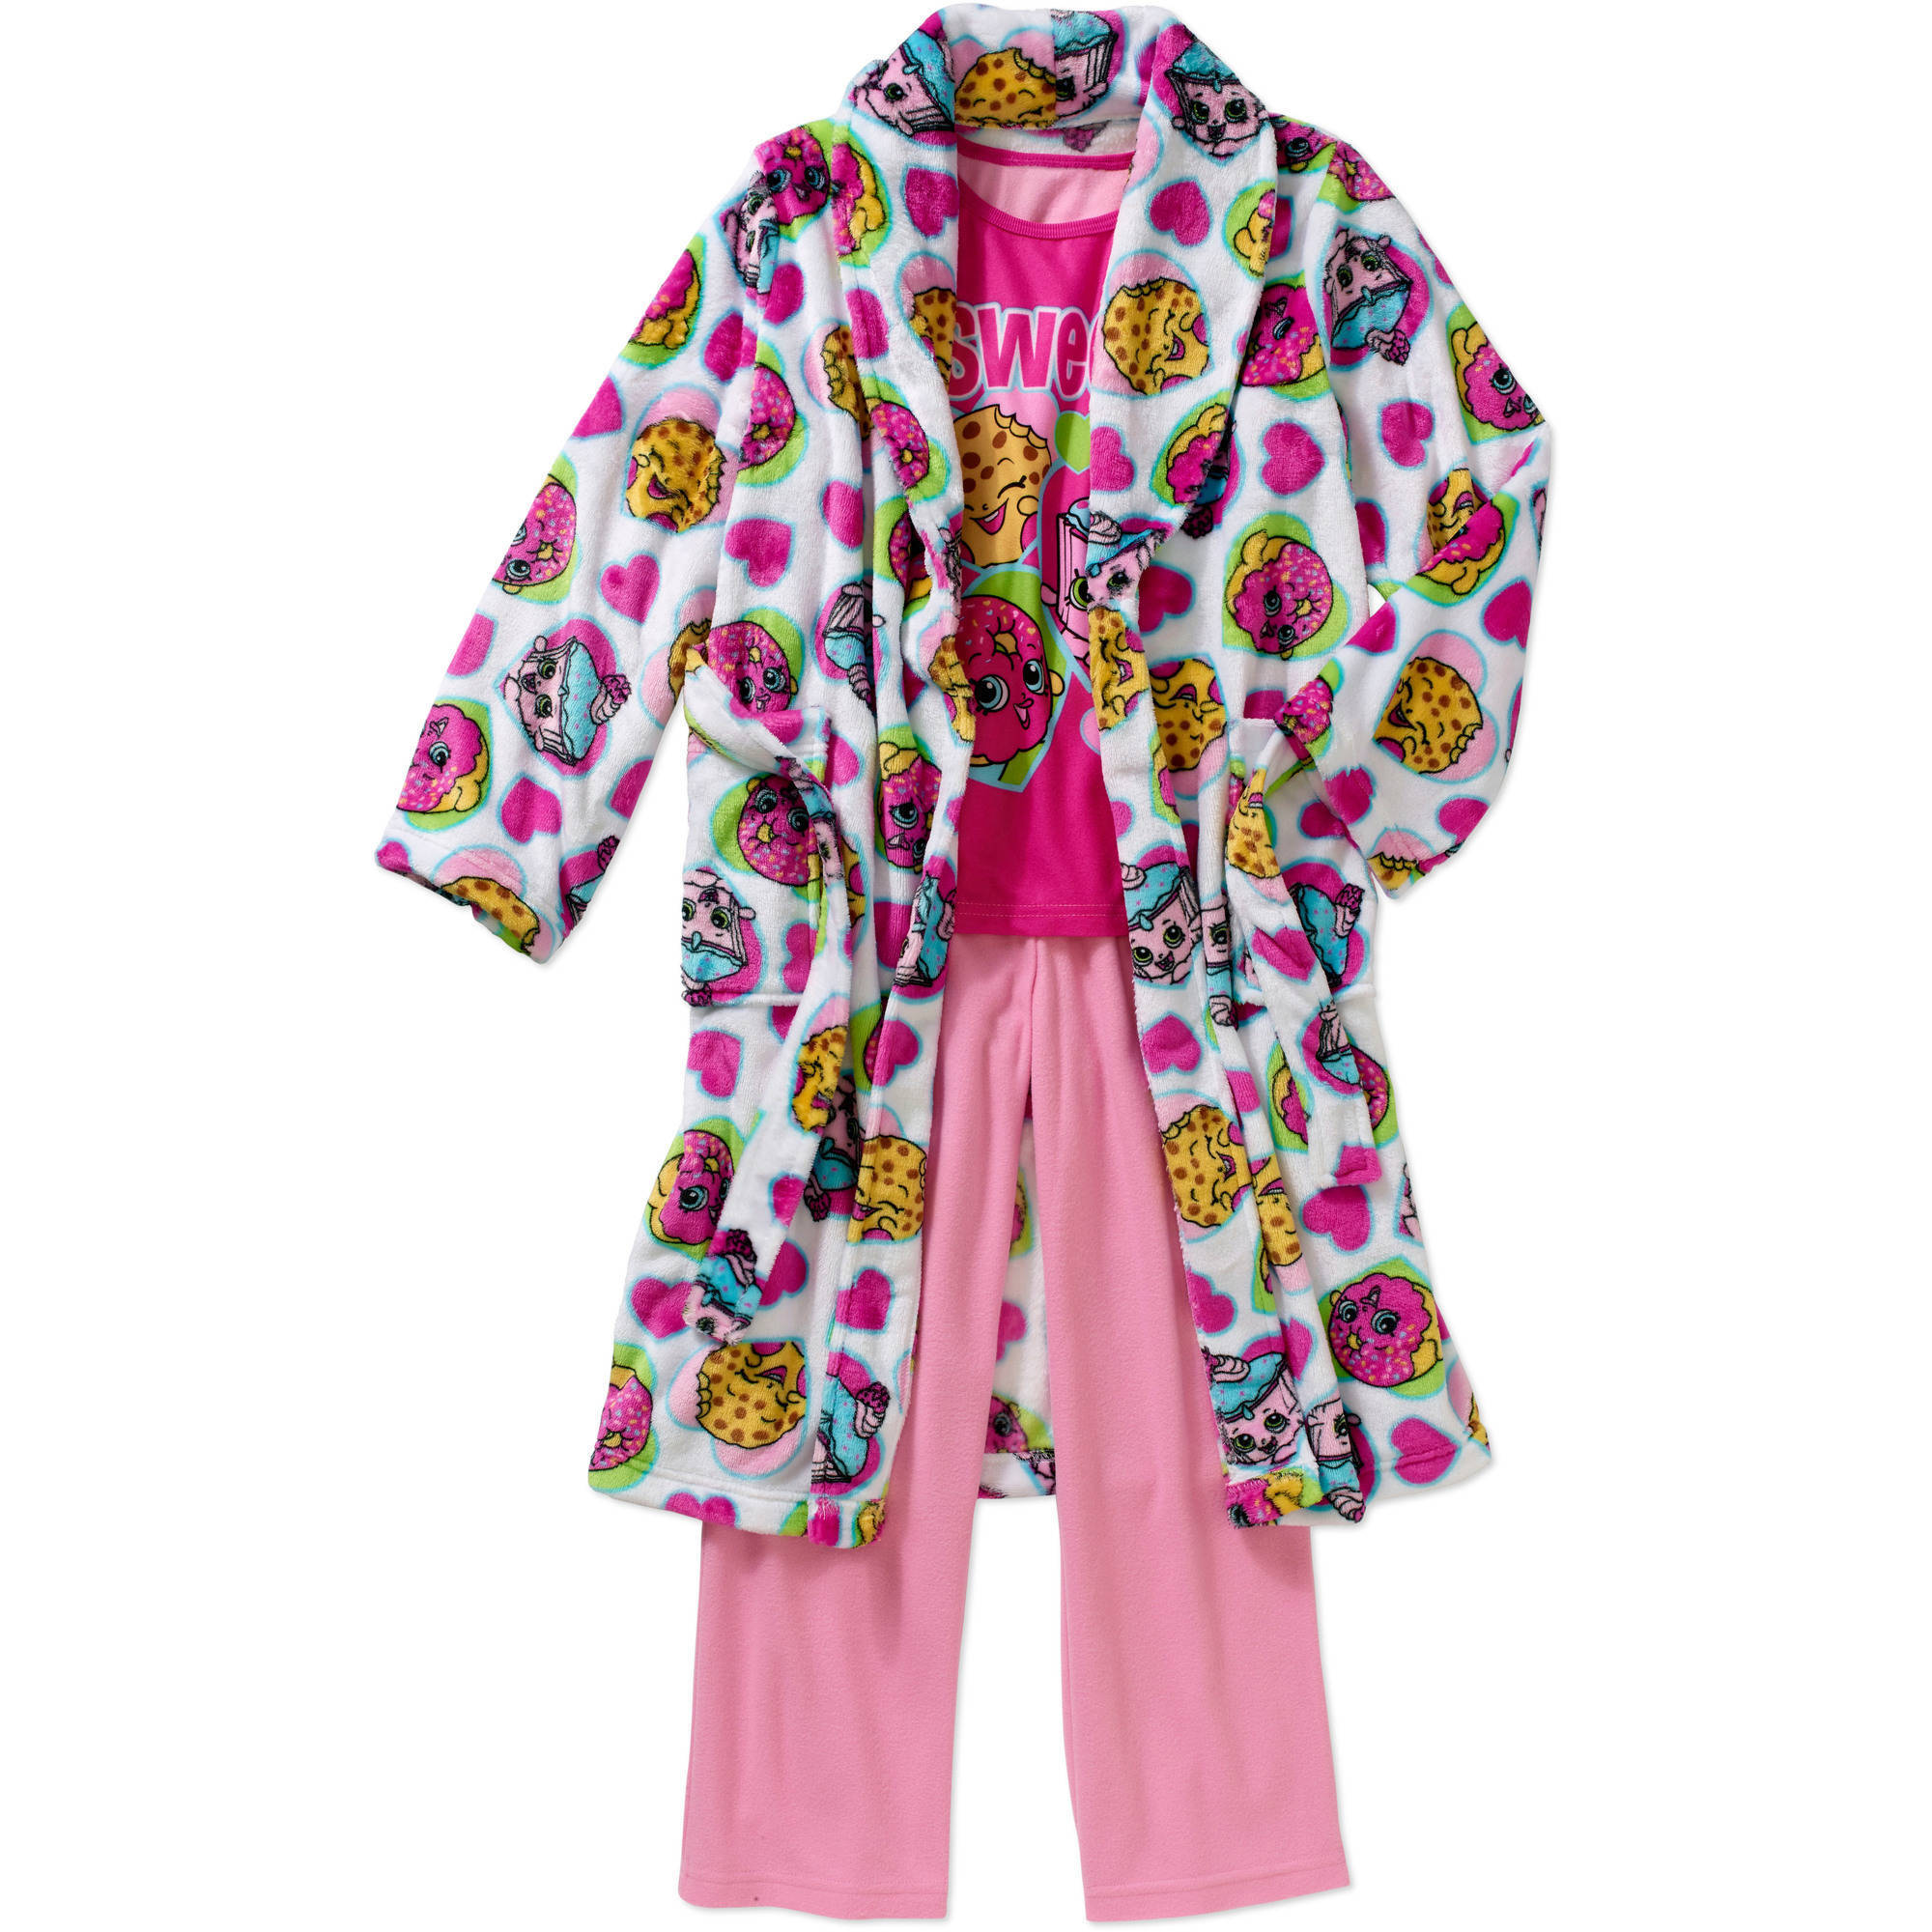 Girls' Licensed 3-Piece Robe Set